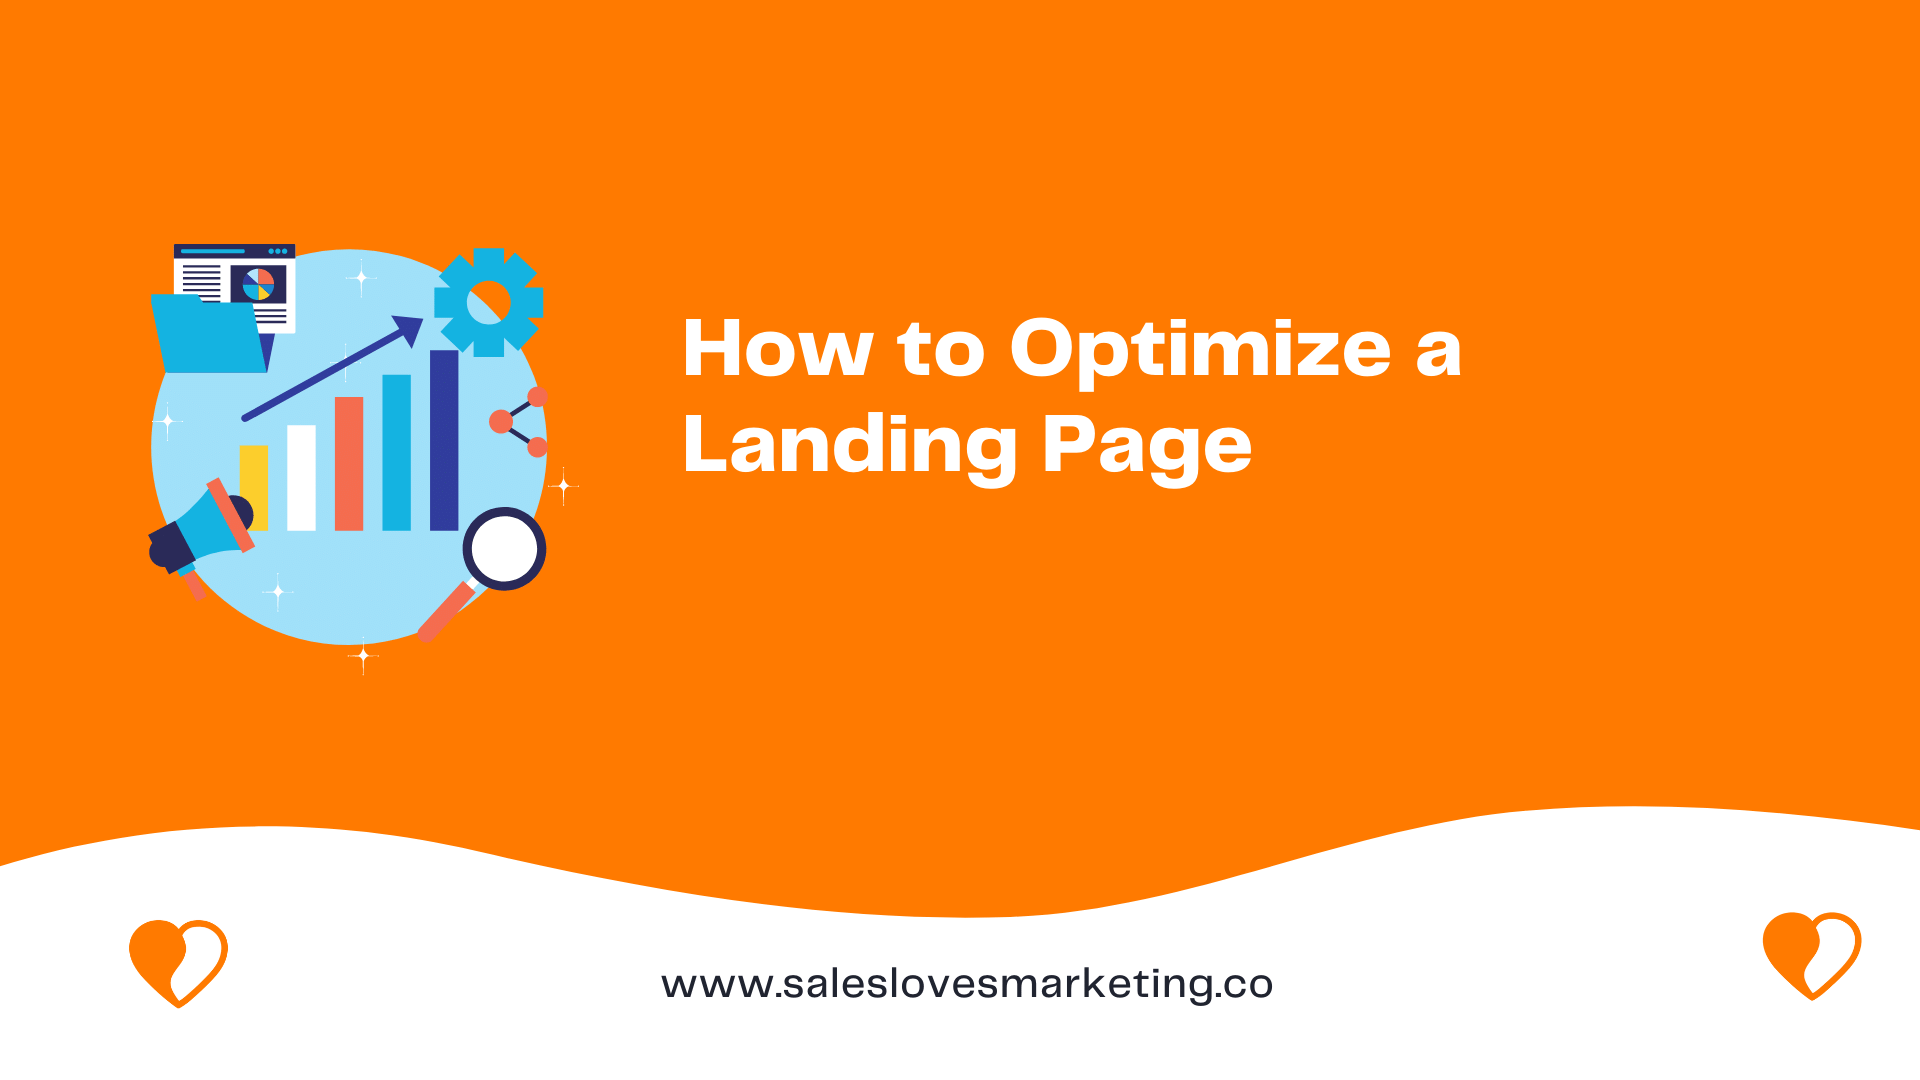 how to optimize a landingpage to get better results